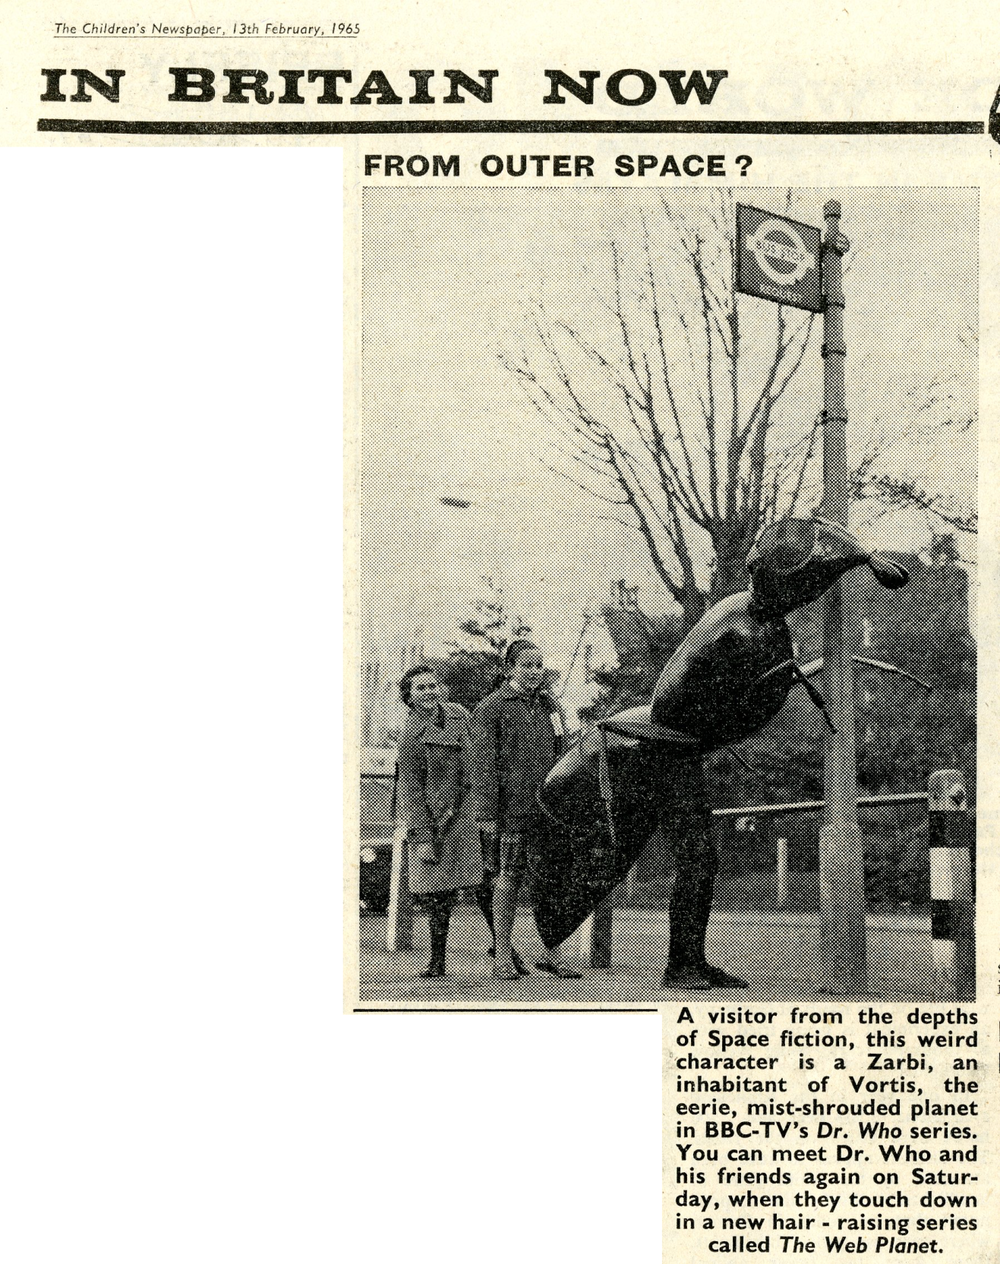 Children's Newspaper, 13 February 1965